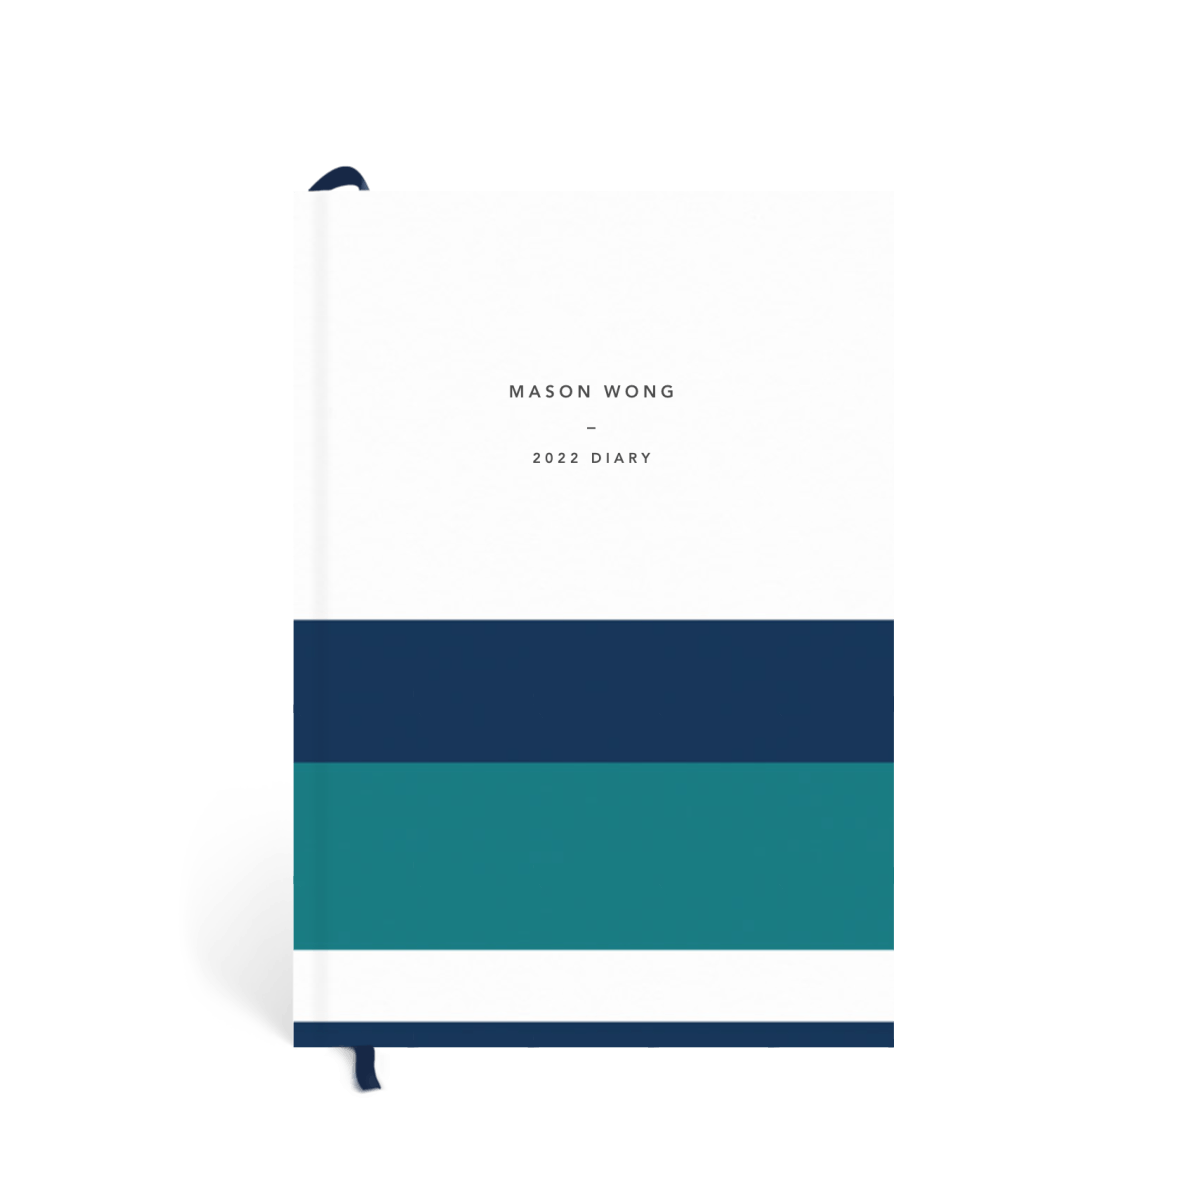 Https%3a%2f%2fwww.papier.com%2fproduct image%2f90127%2f36%2fstriped colourblock navy 22544 front 1569935828.png?ixlib=rb 1.1